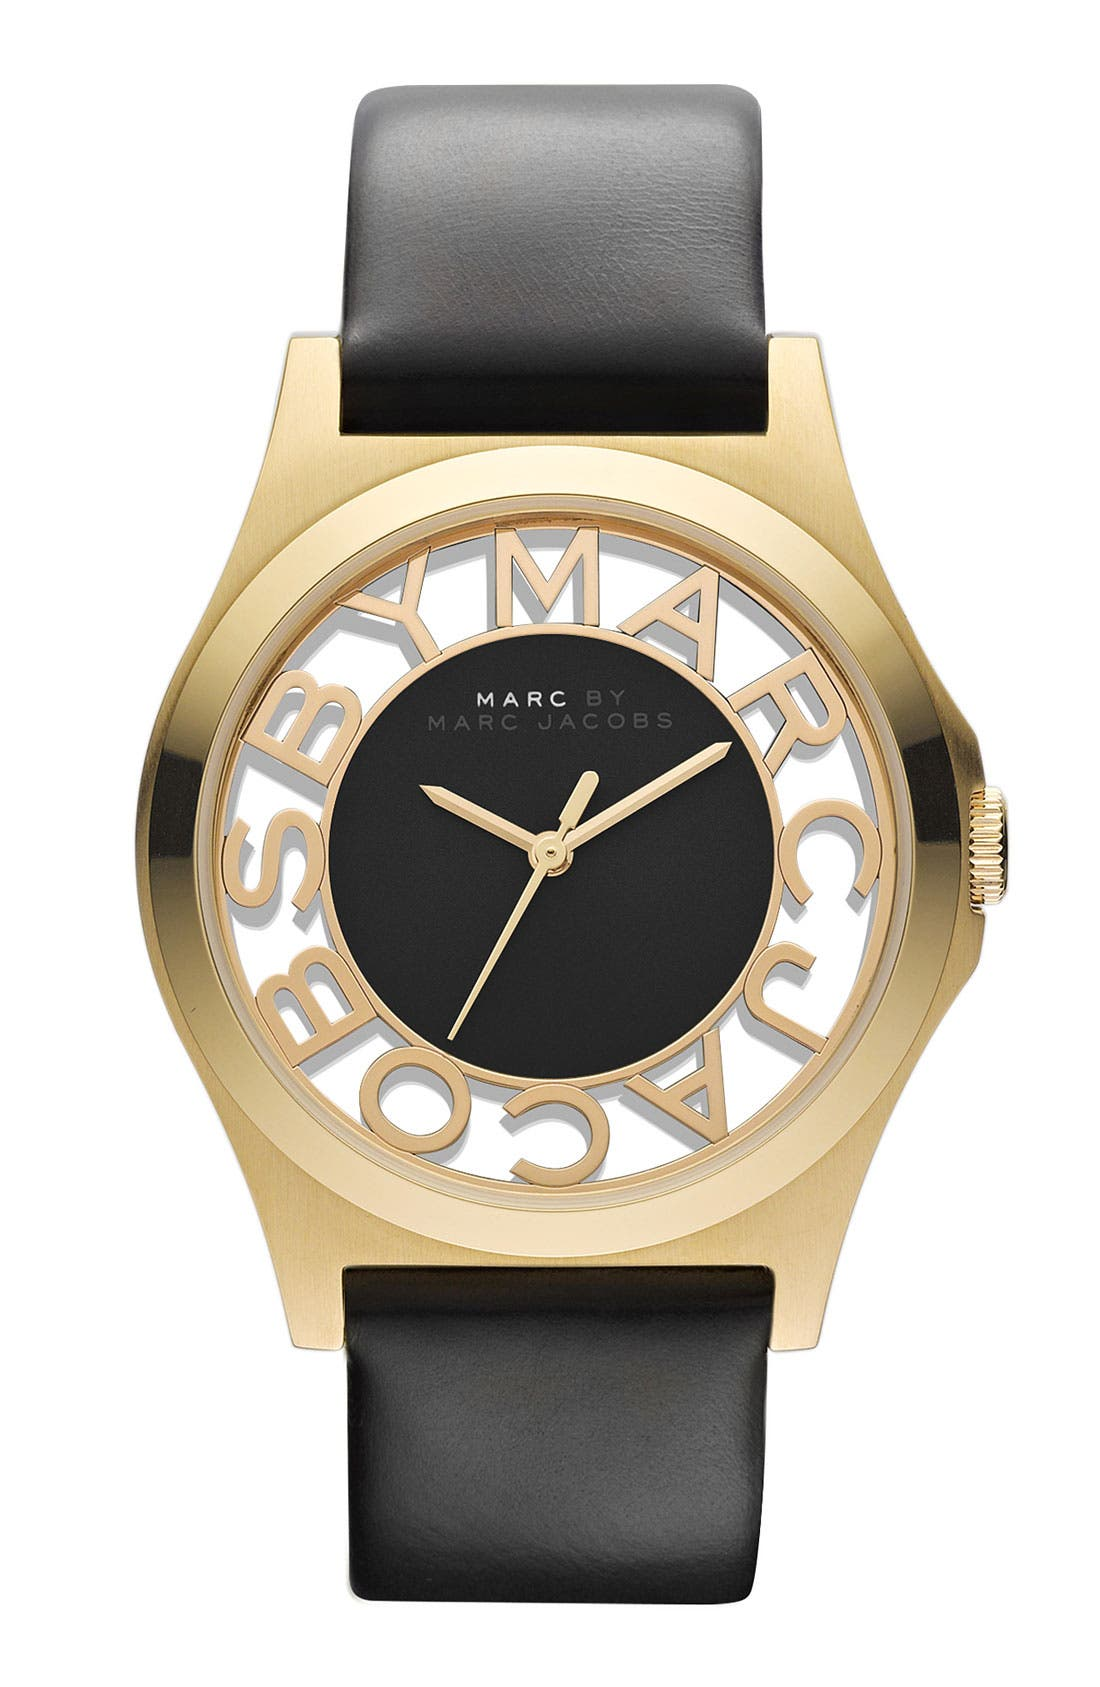 Main Image - MARC BY MARC JACOBS 'Henry Skeleton' Watch, 40mm